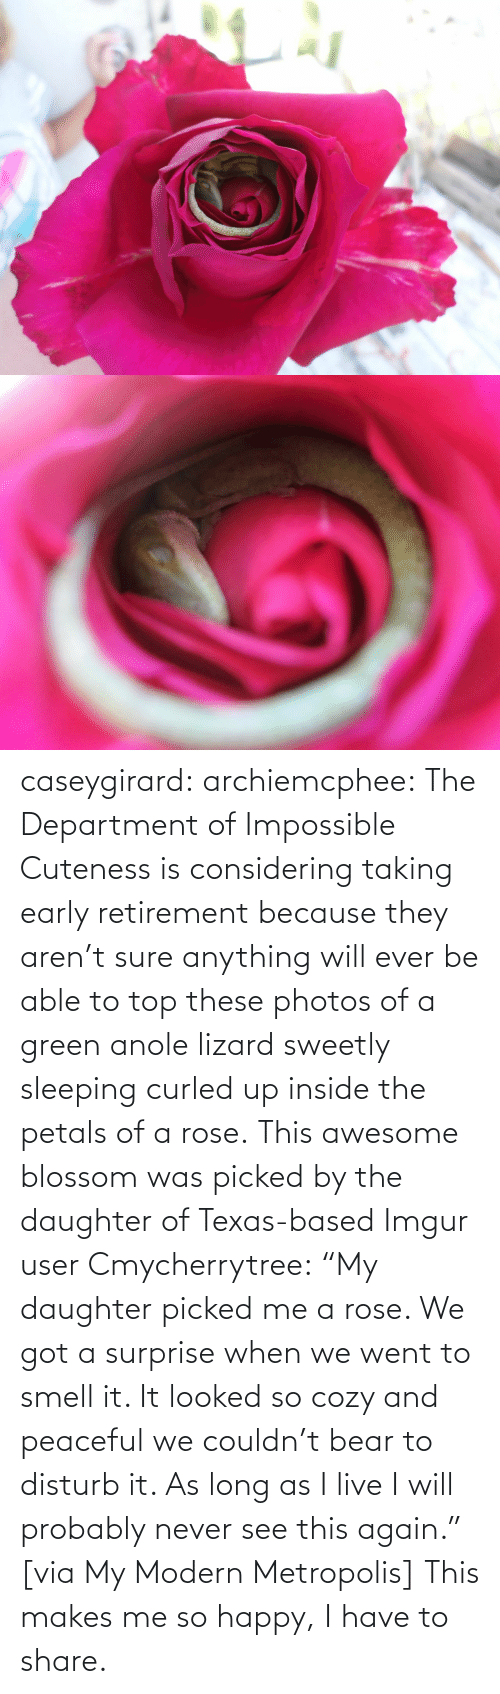 "modern: caseygirard:  archiemcphee:   The Department of Impossible Cuteness is considering taking early retirement because they aren't sure anything will ever be able to top these photos of a green anole lizard sweetly sleeping curled up inside the petals of a rose. This awesome blossom was picked by the daughter of Texas-based Imgur user Cmycherrytree: ""My daughter picked me a rose. We got a surprise when we went to smell it. It looked so cozy and peaceful we couldn't bear to disturb it. As long as I live I will probably never see this again."" [via My Modern Metropolis]   This makes me so happy, I have to share."